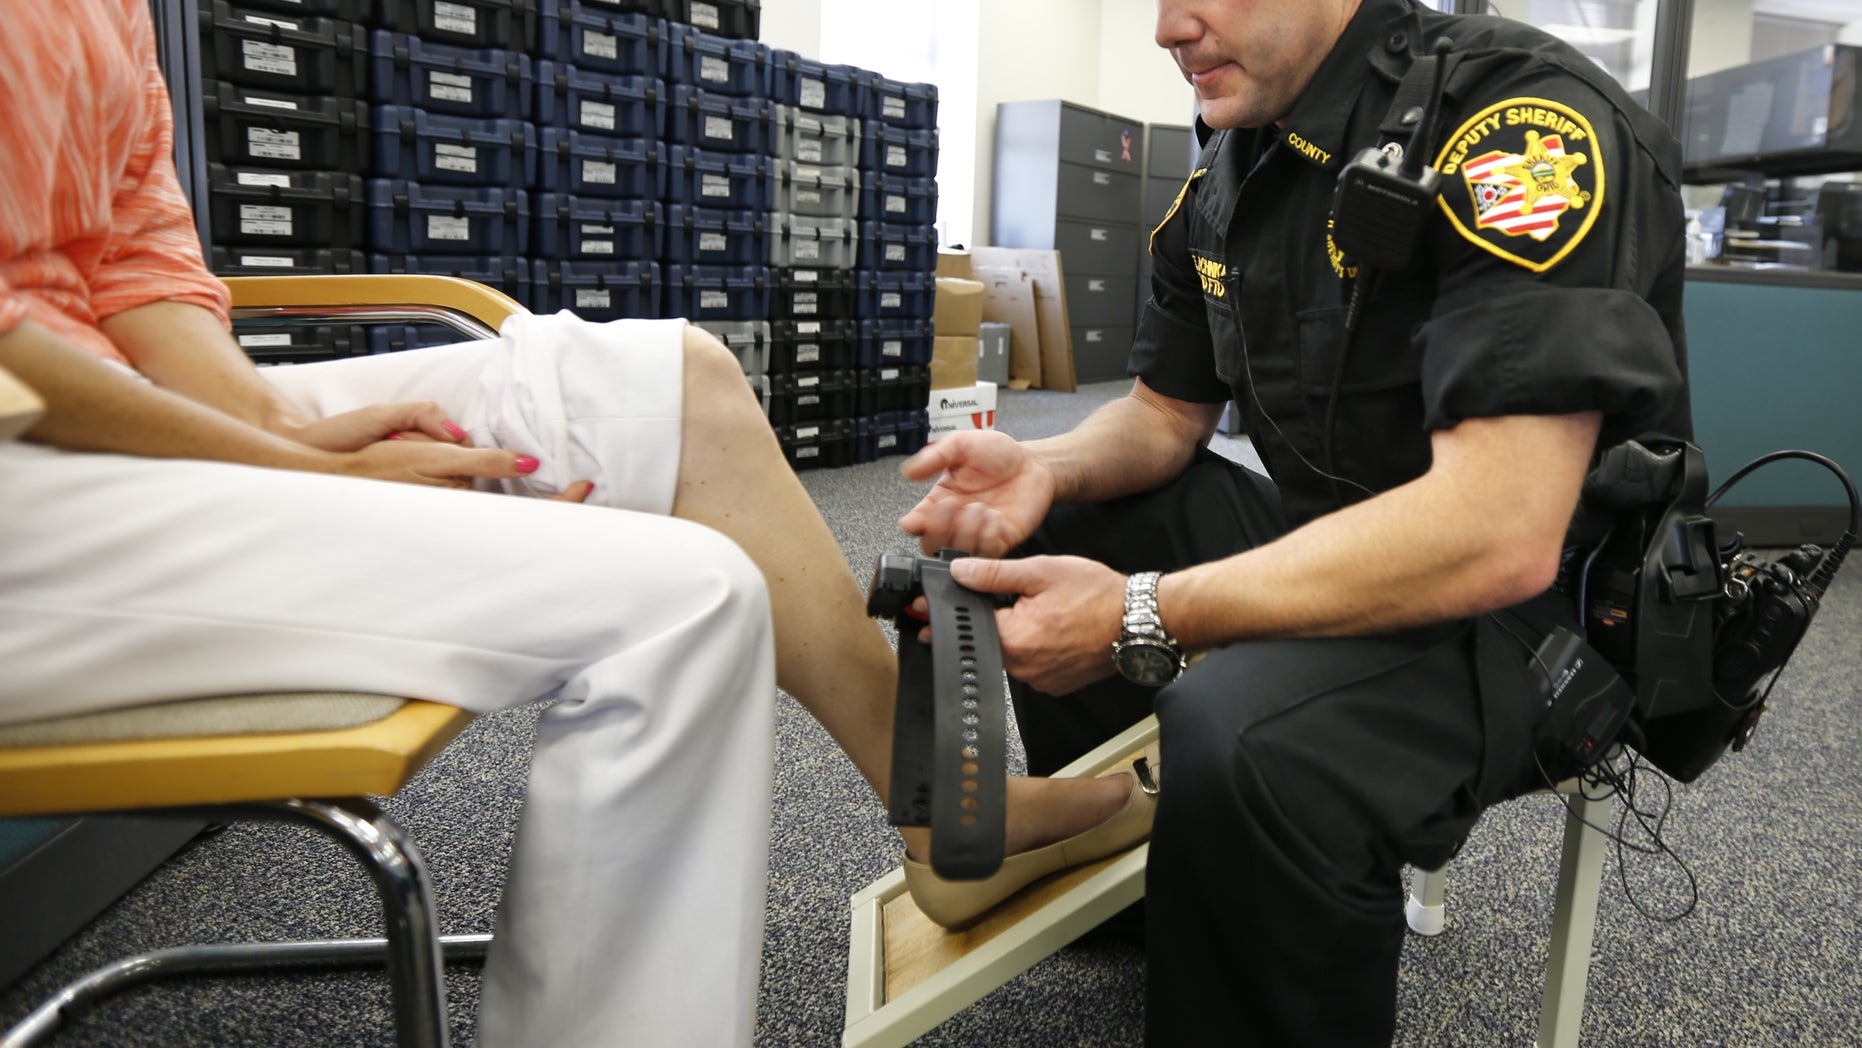 July 12, 2013: Deputy Edward Schinkal attaches an electronic monitoring unit to a woman who was sentenced to home incarceration, in Cincinnati.